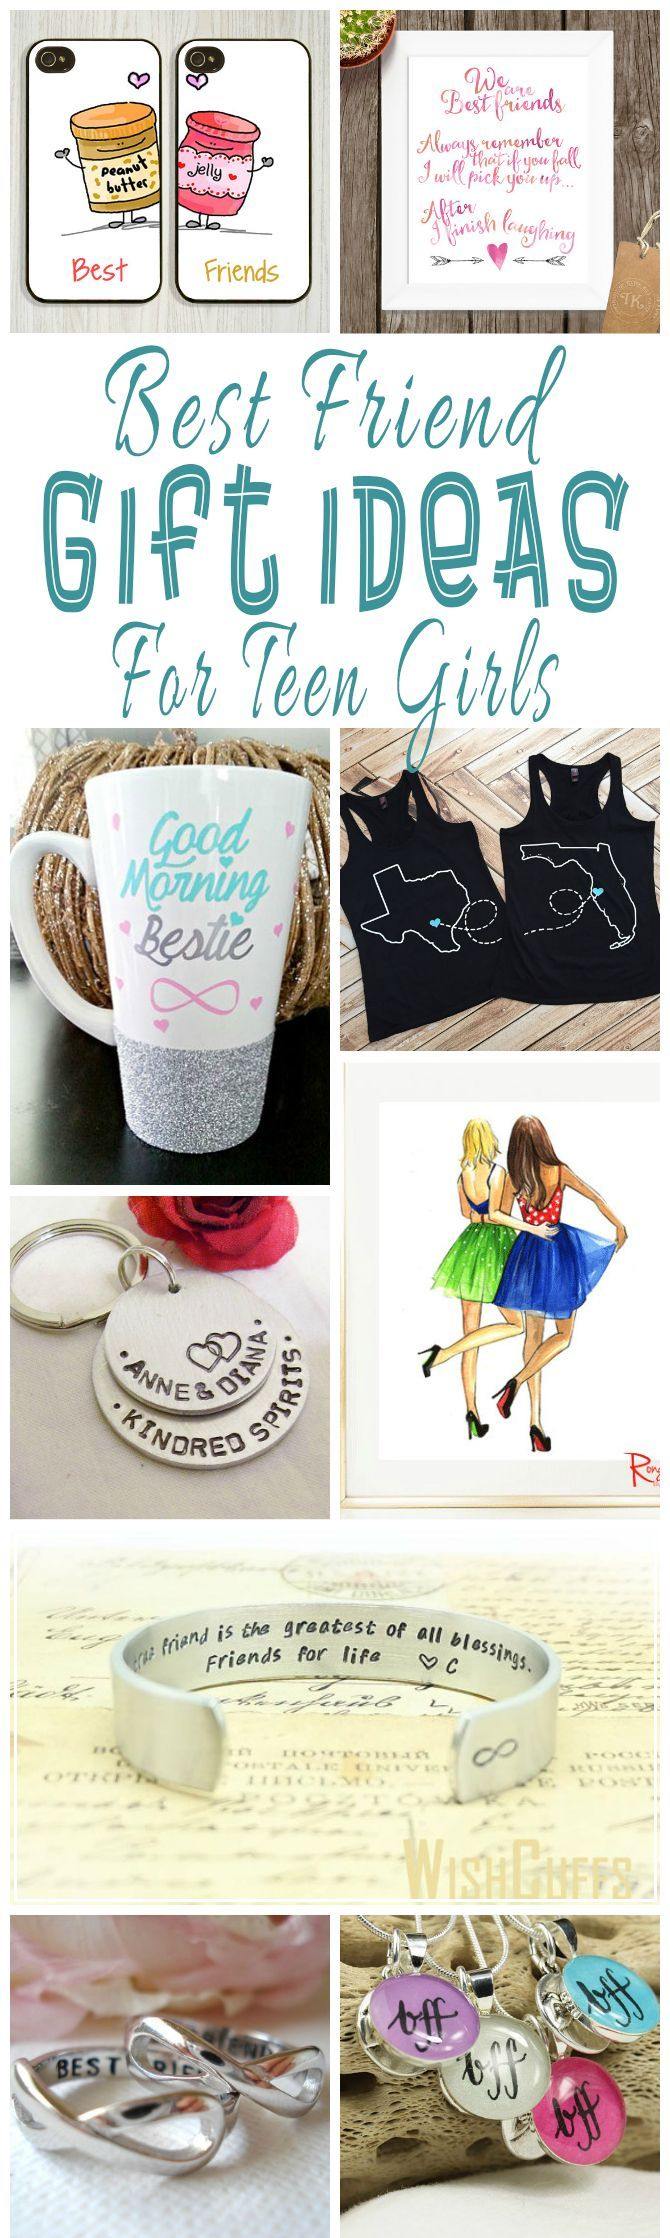 Best Friend Gift Ideas For Teens Diy Gifts For Friends